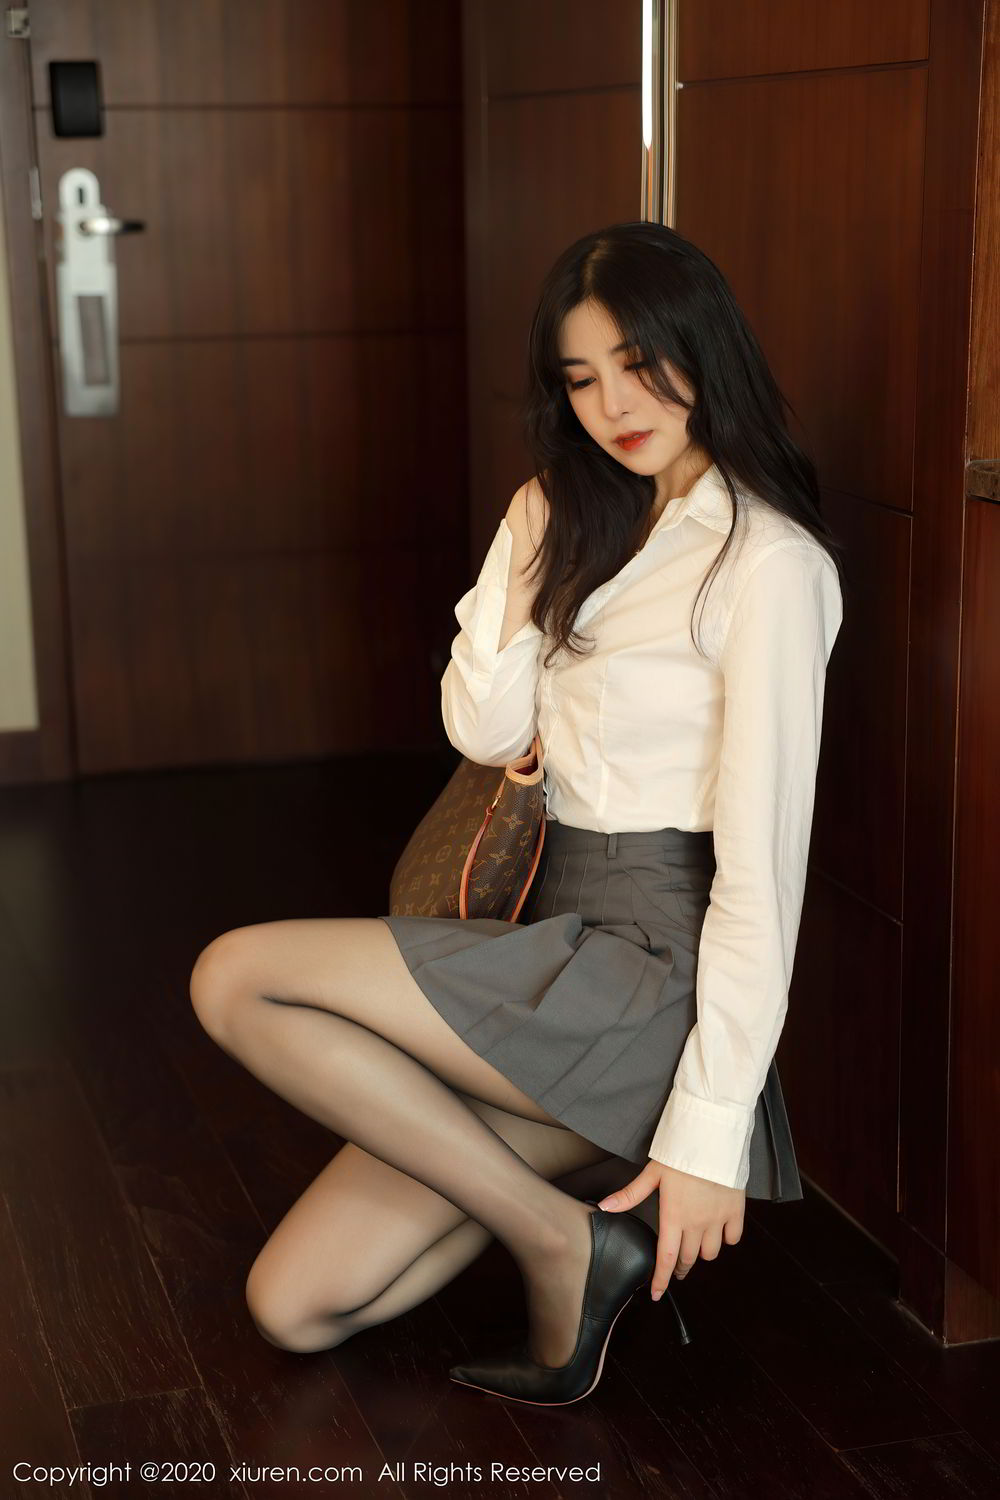 [XiuRen] Vol.2330 Han Jing An 3P, Han Jing An, Tall, Uniform, Xiuren